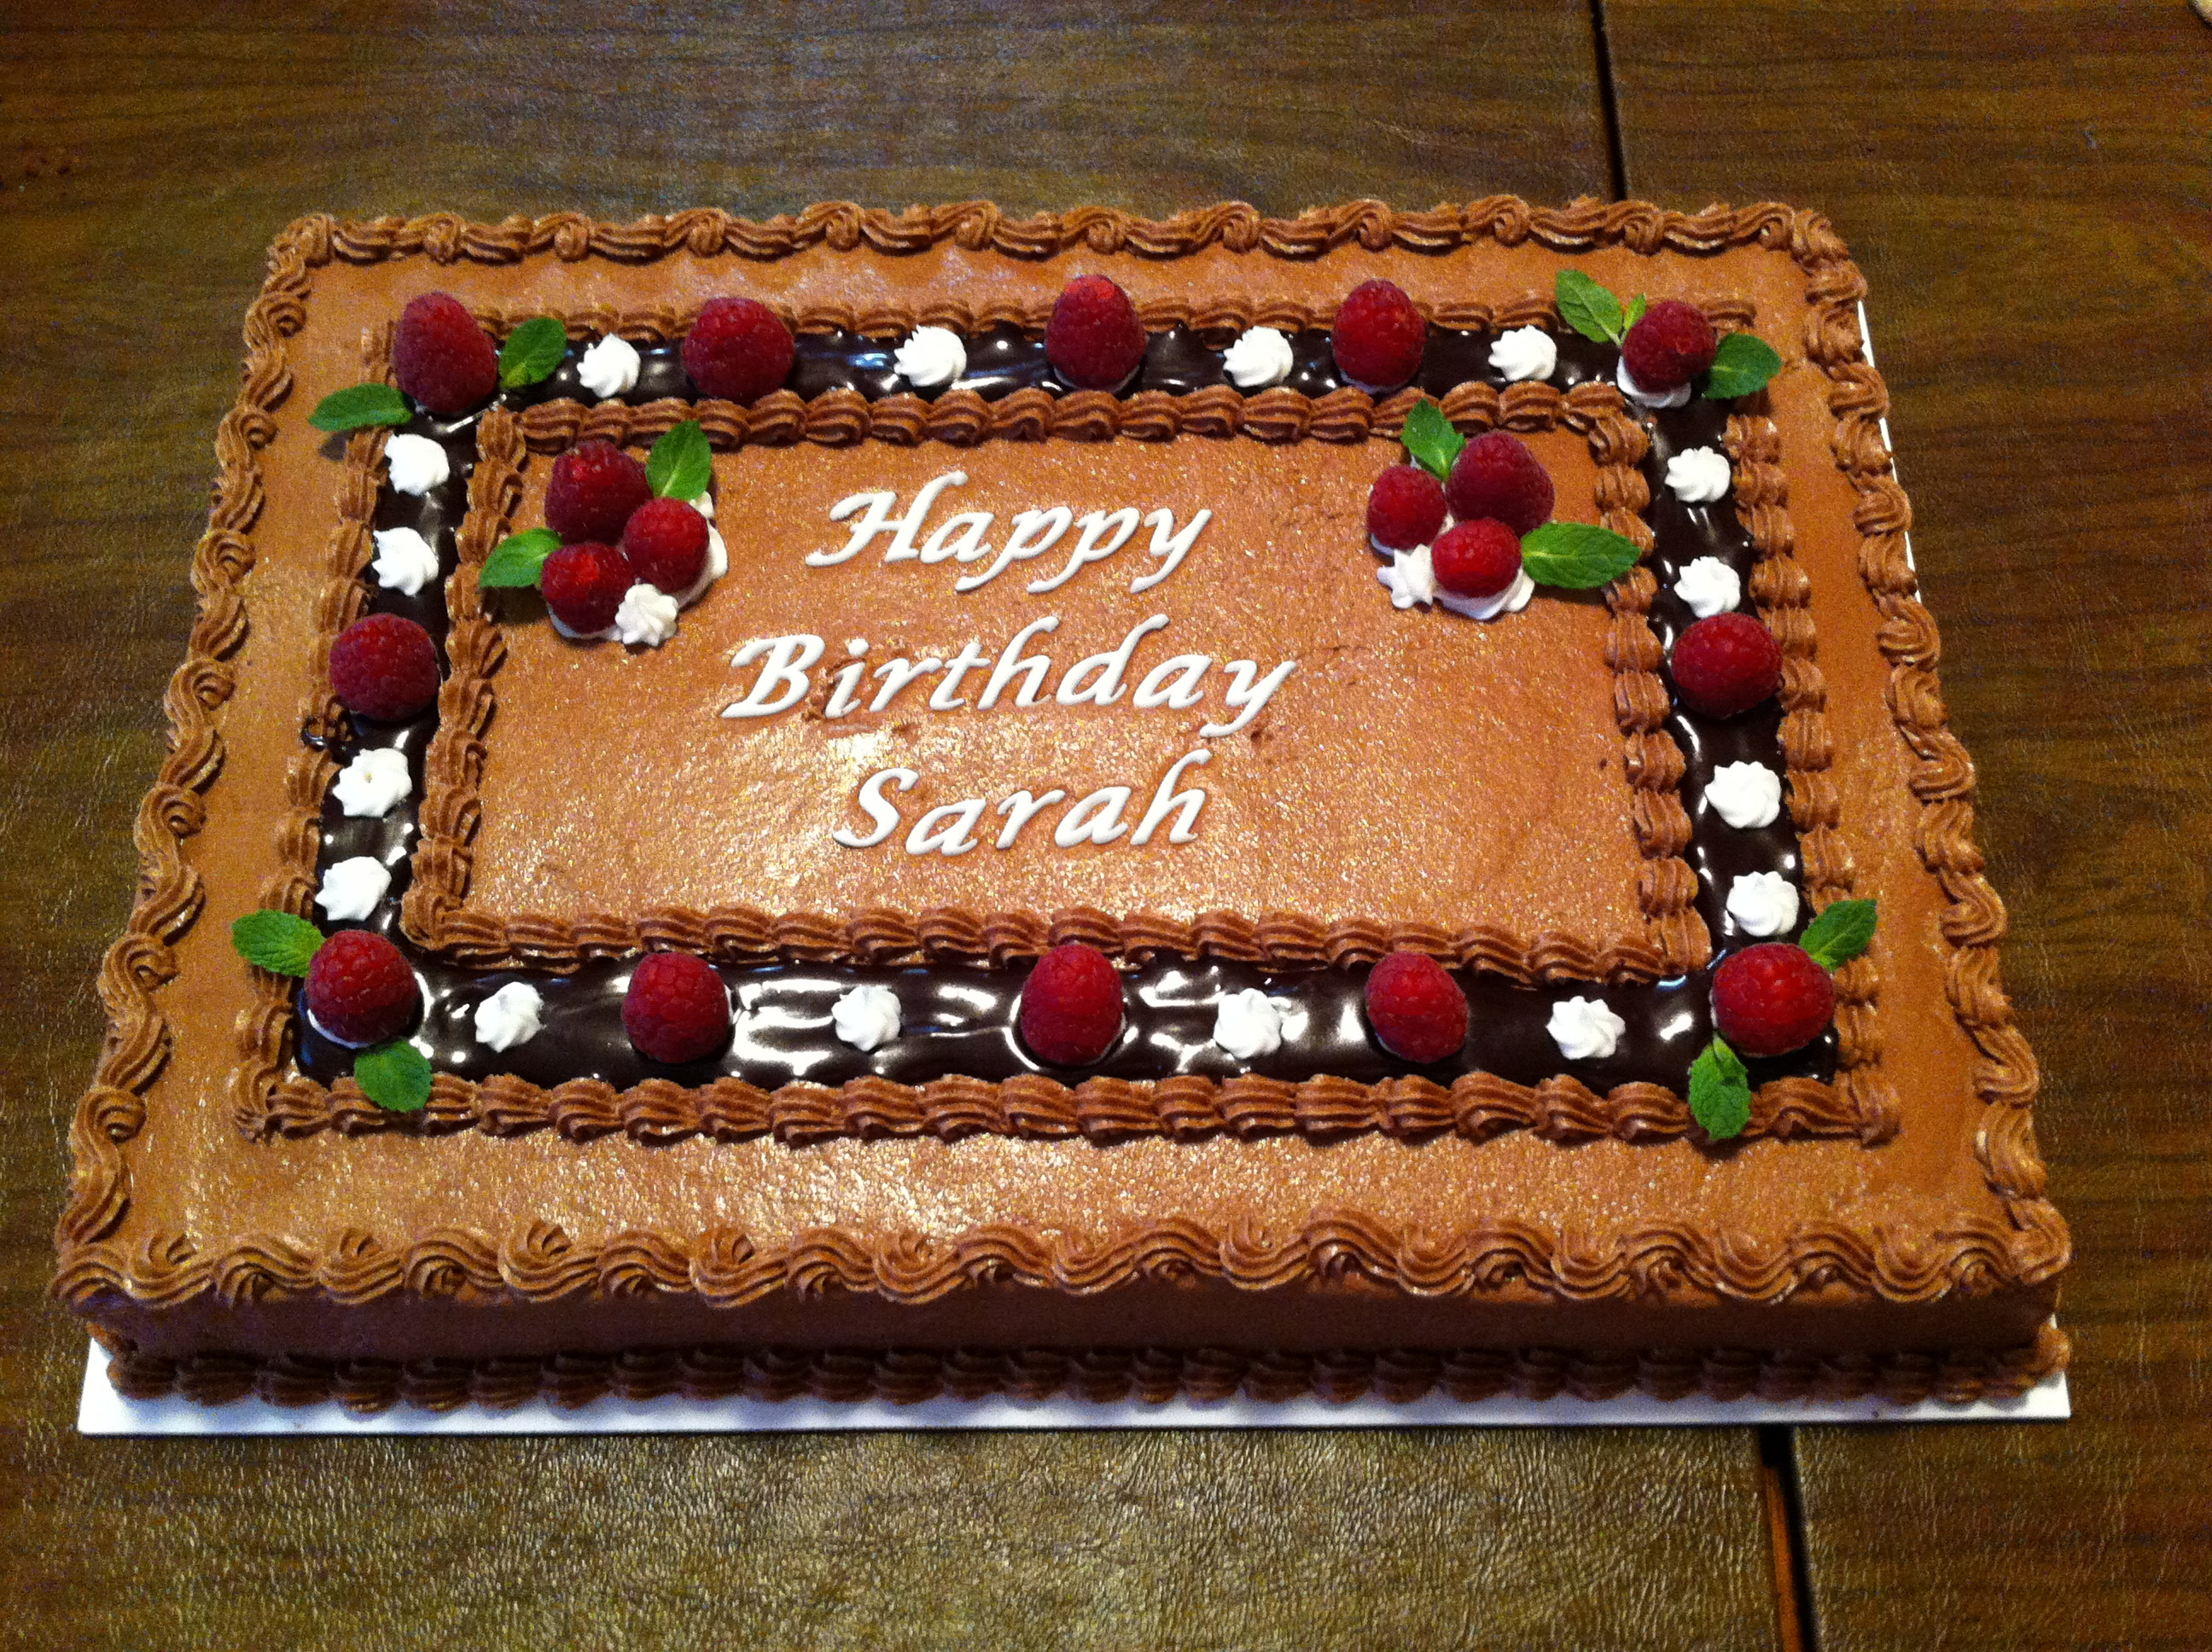 Best ideas about Birthday Sheet Cake . Save or Pin Sheet cake photos Now.